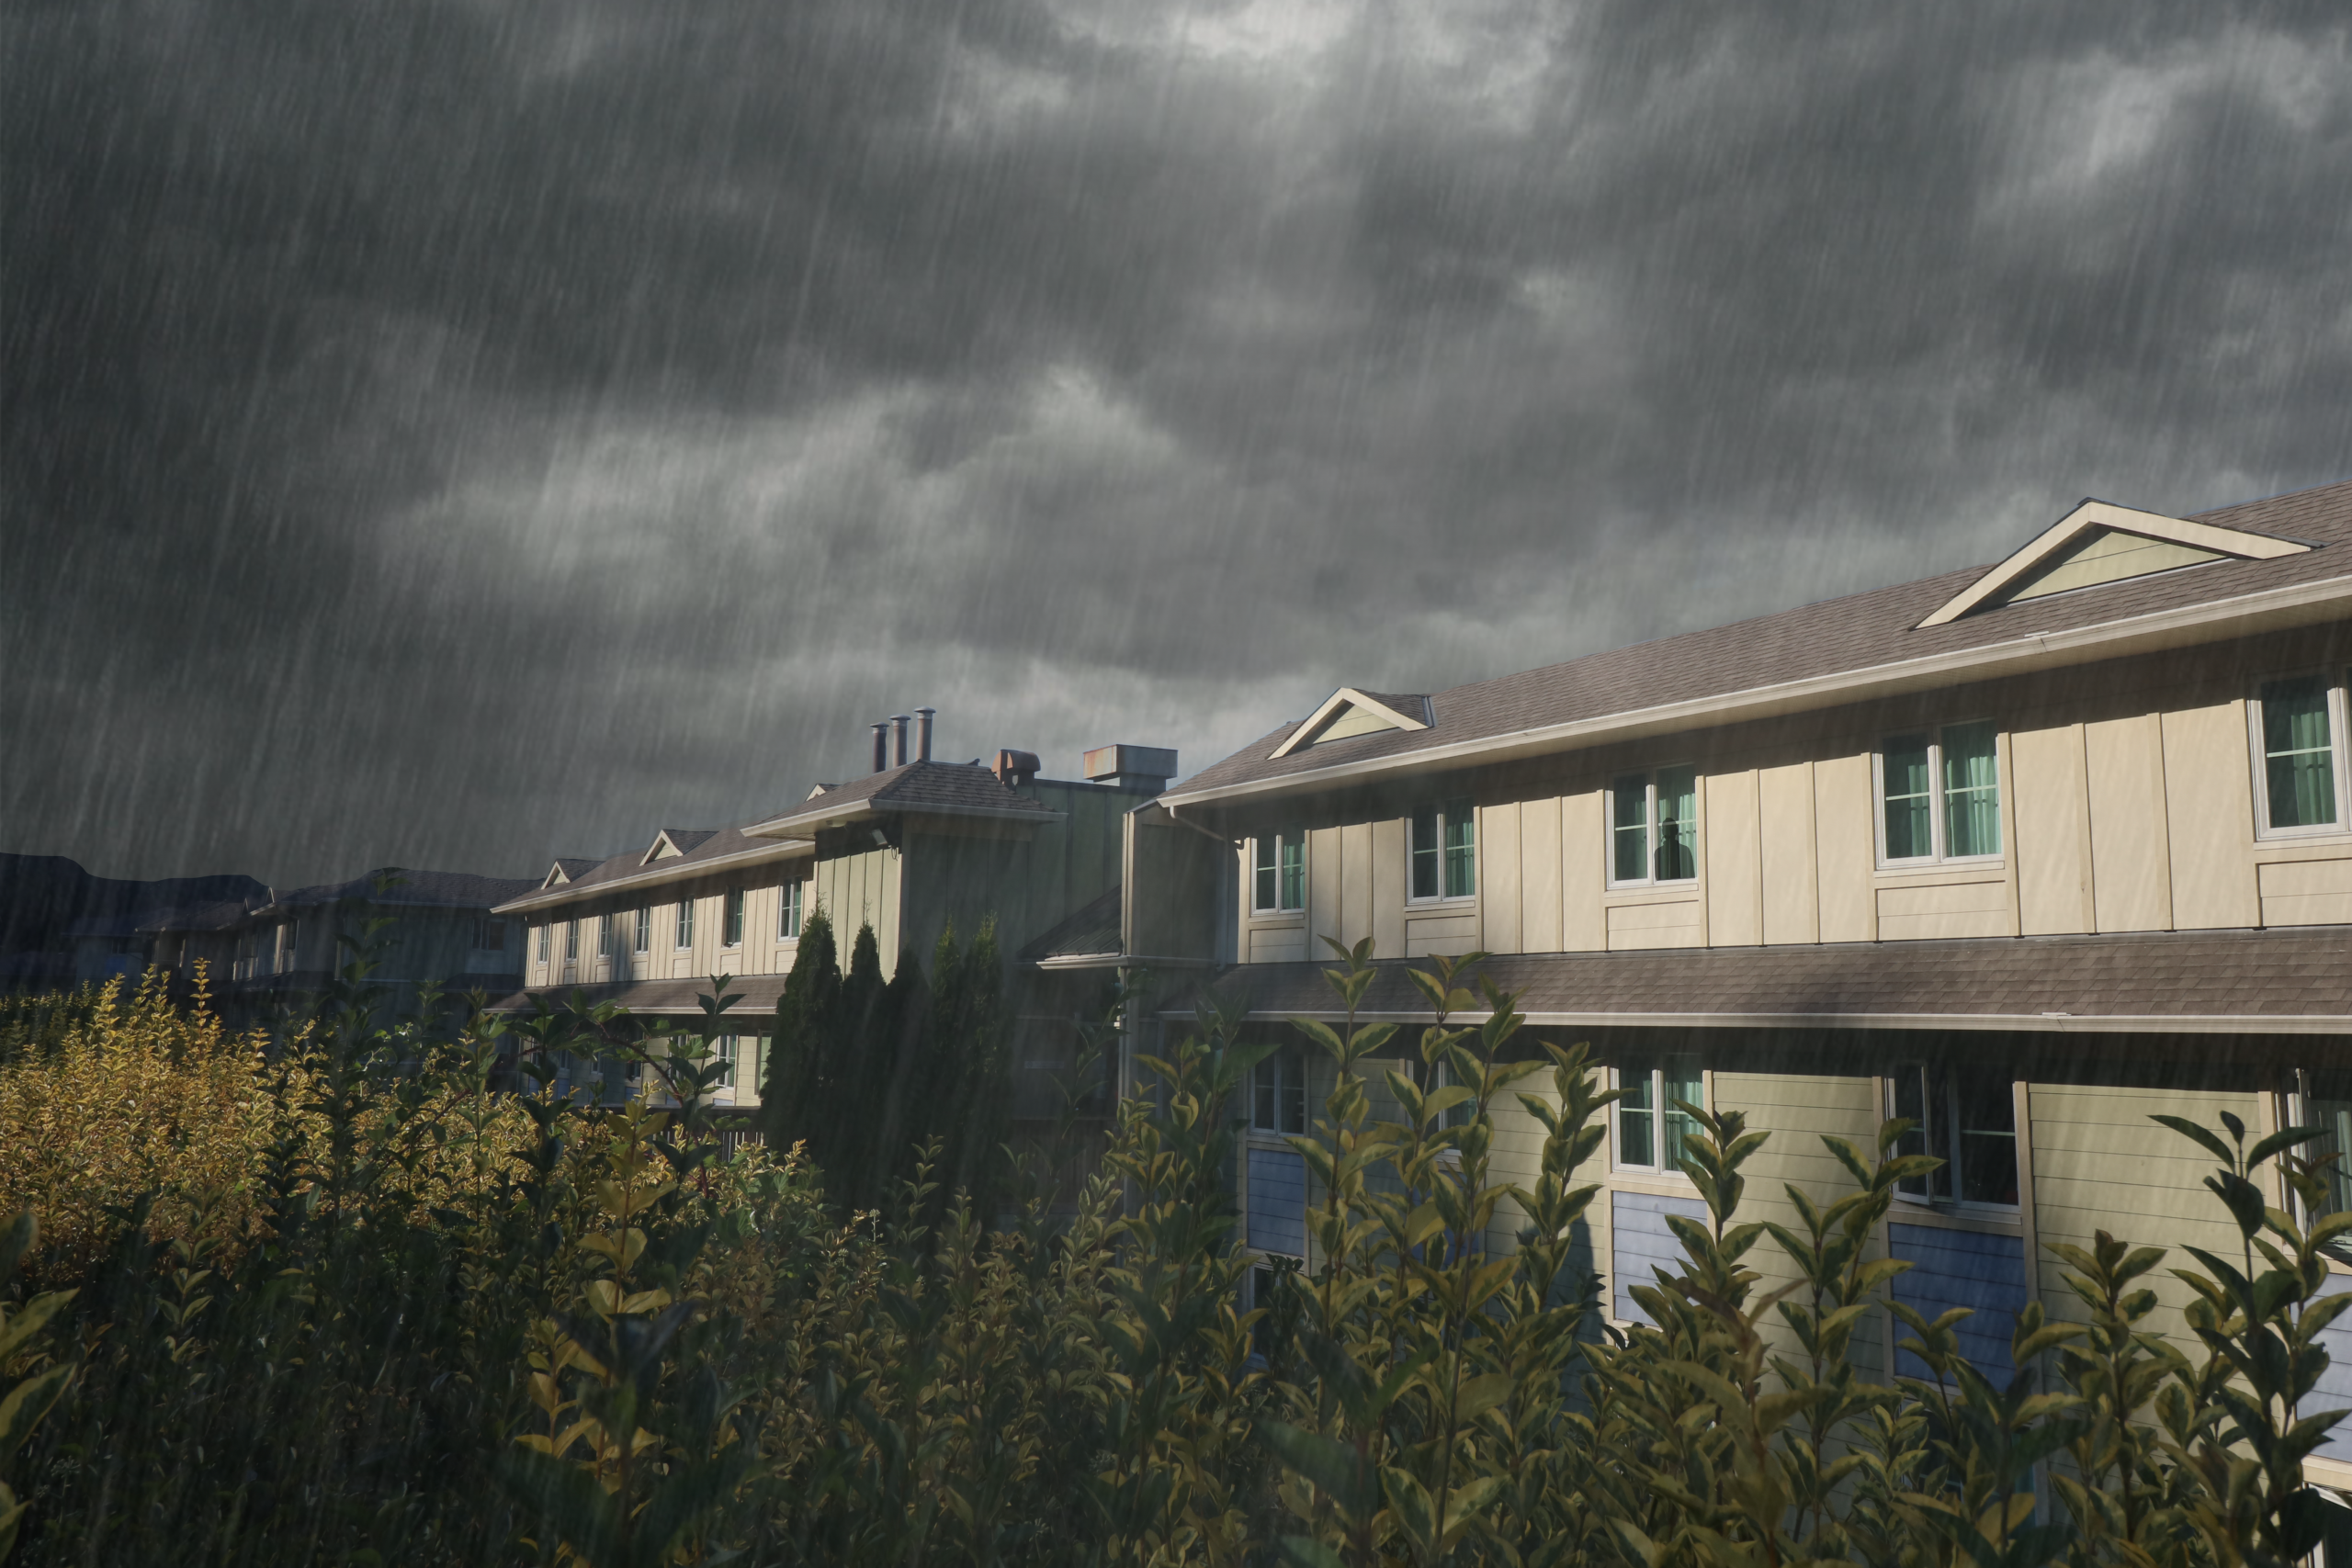 An edited photo of Building Two on the VIU Student Residence has a stormy grey sky